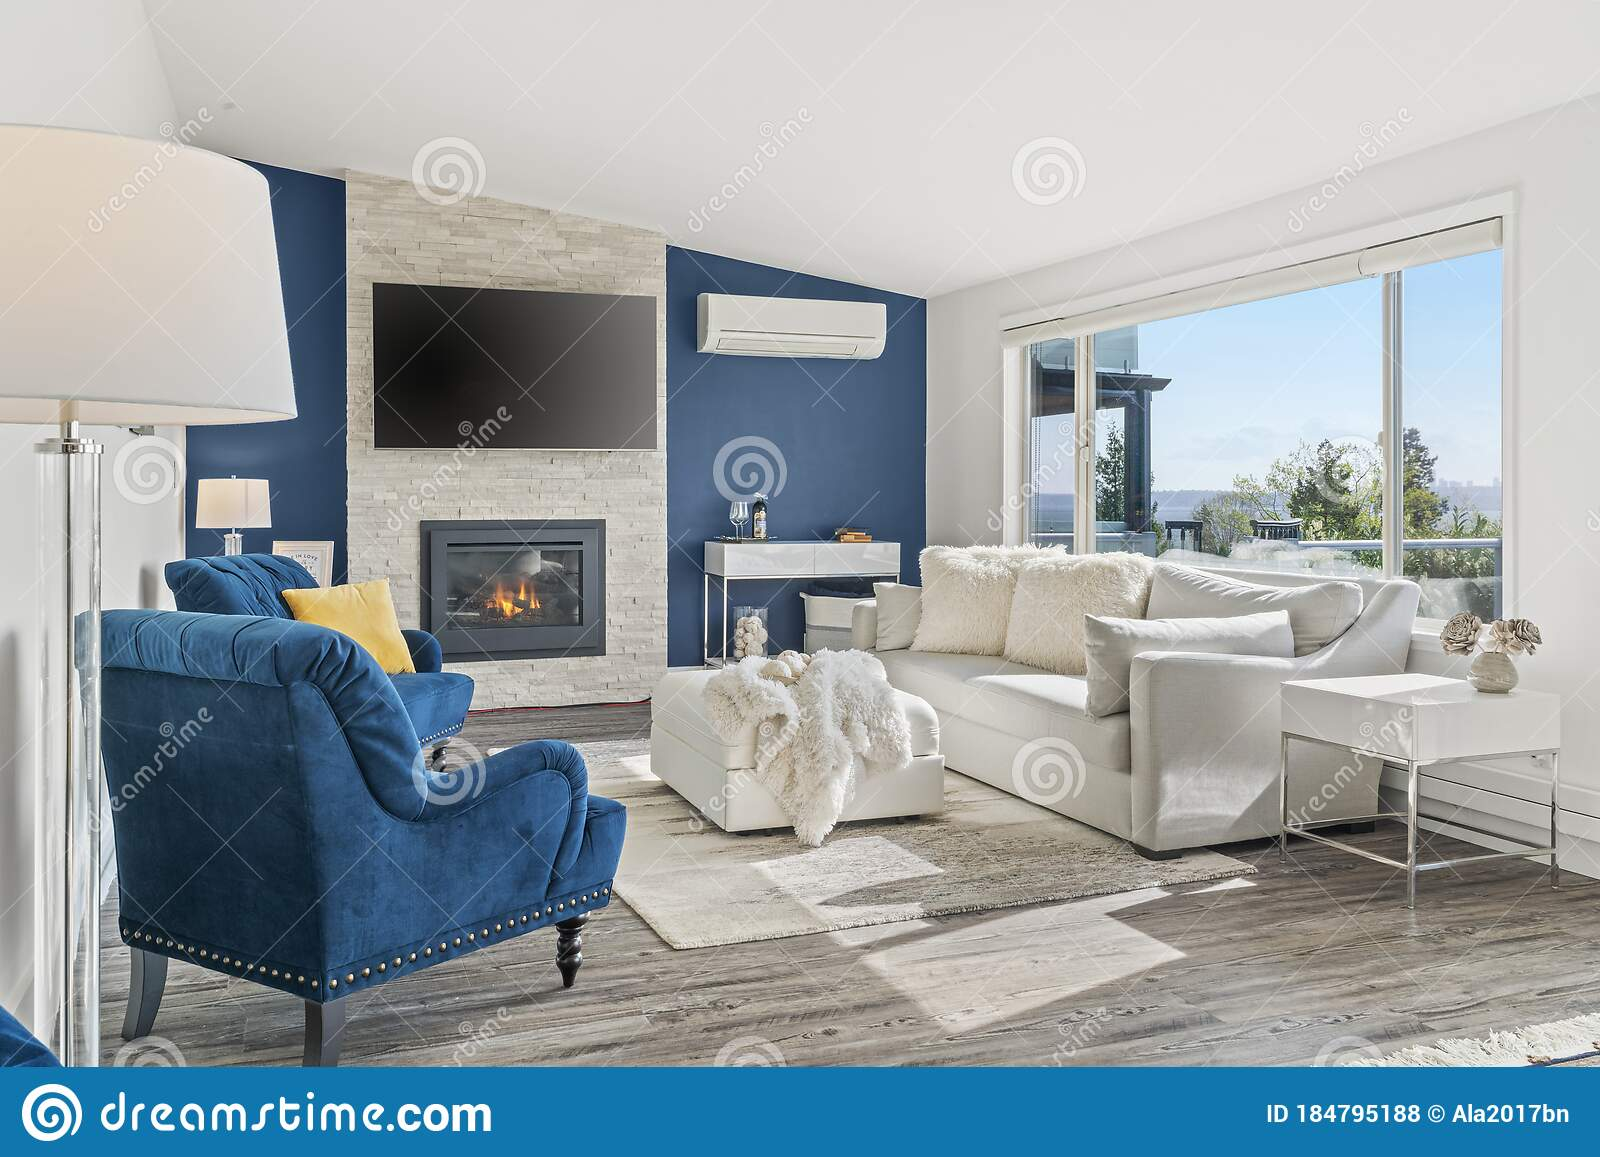 Welcoming Living Room With A Blue Accent Wall White Faux Fur Pillows And A Modern Fireplace Stock Photo Image Of Floor Light 184795188